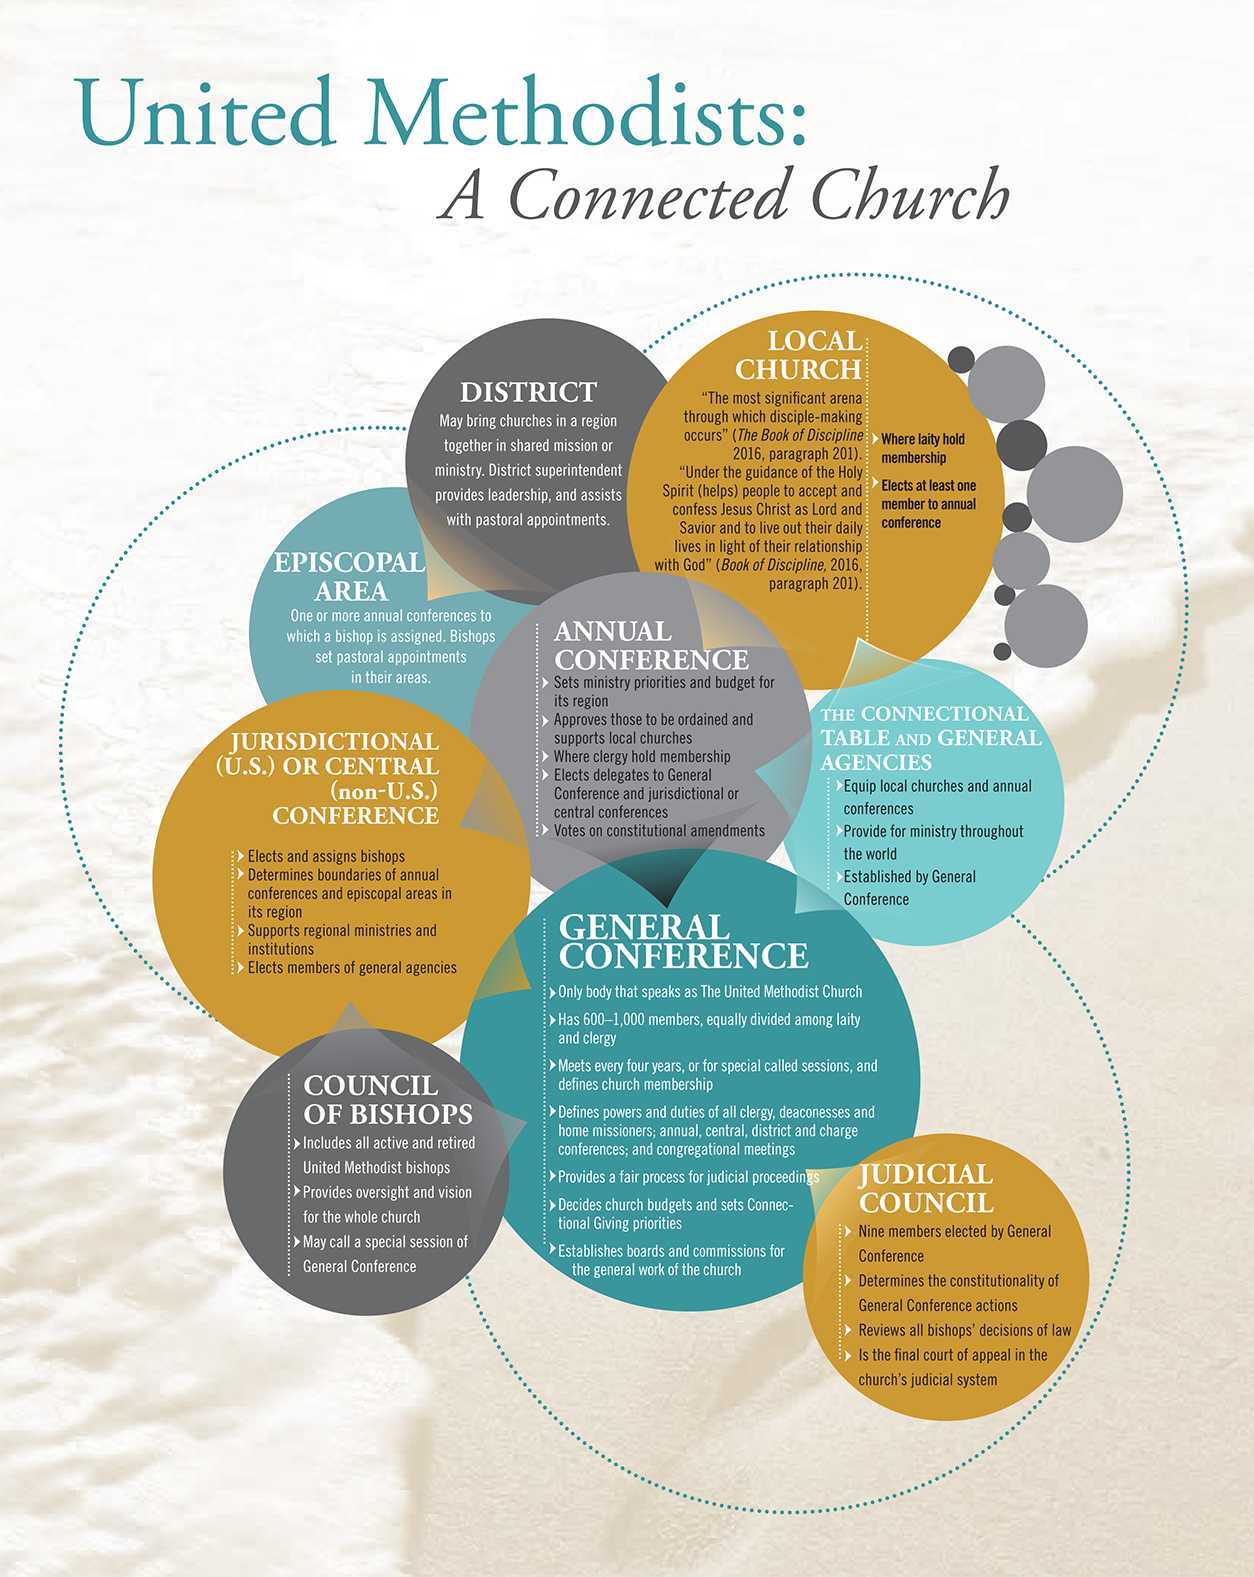 umc-connectional-structure-infographic